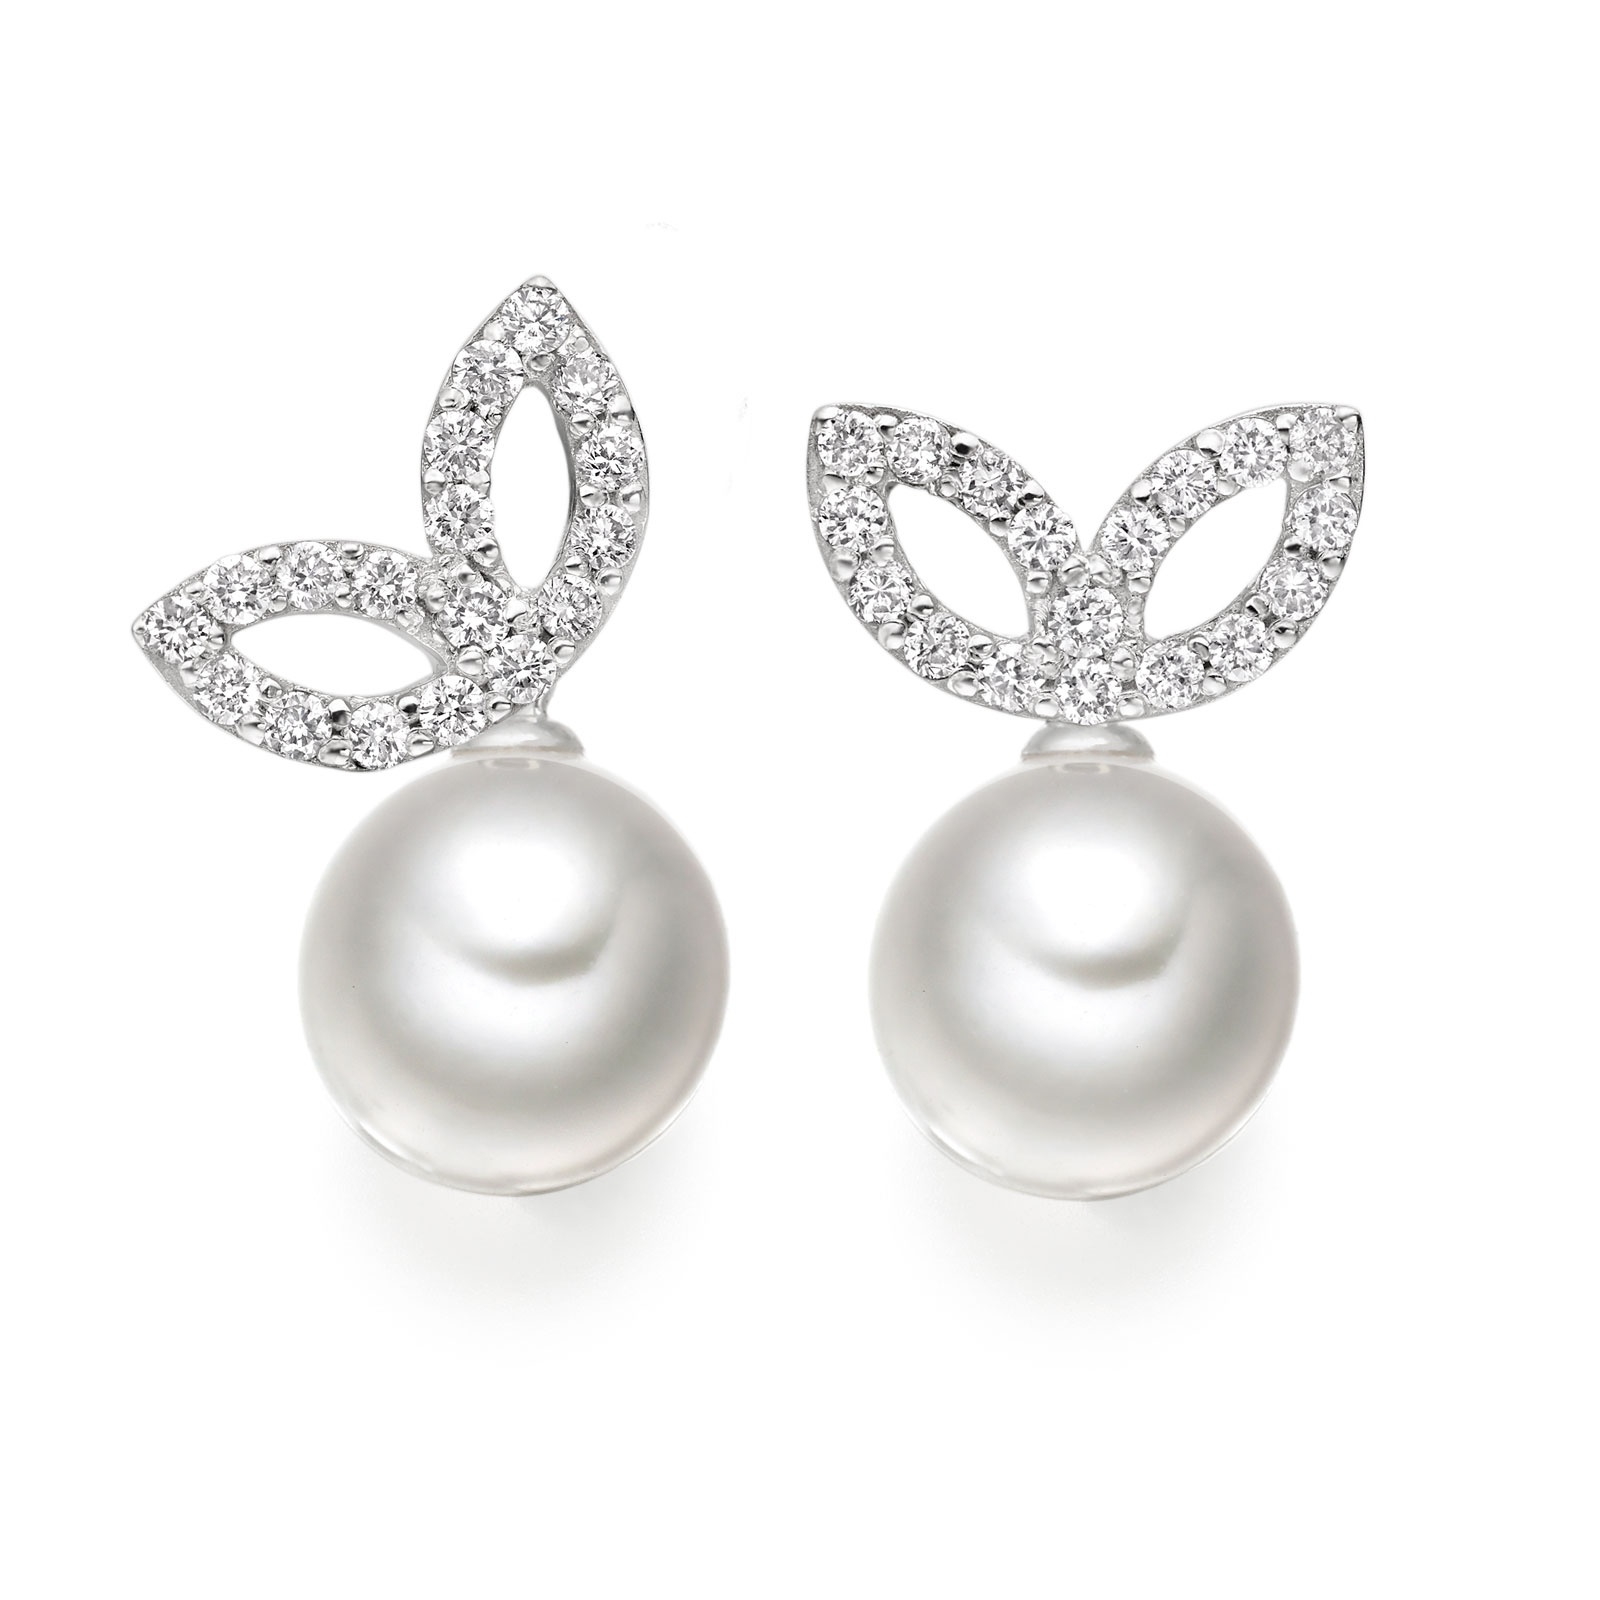 Enchanted Diamond Studs in White Gold with Akoya Pearls-AEWRWG0485-1